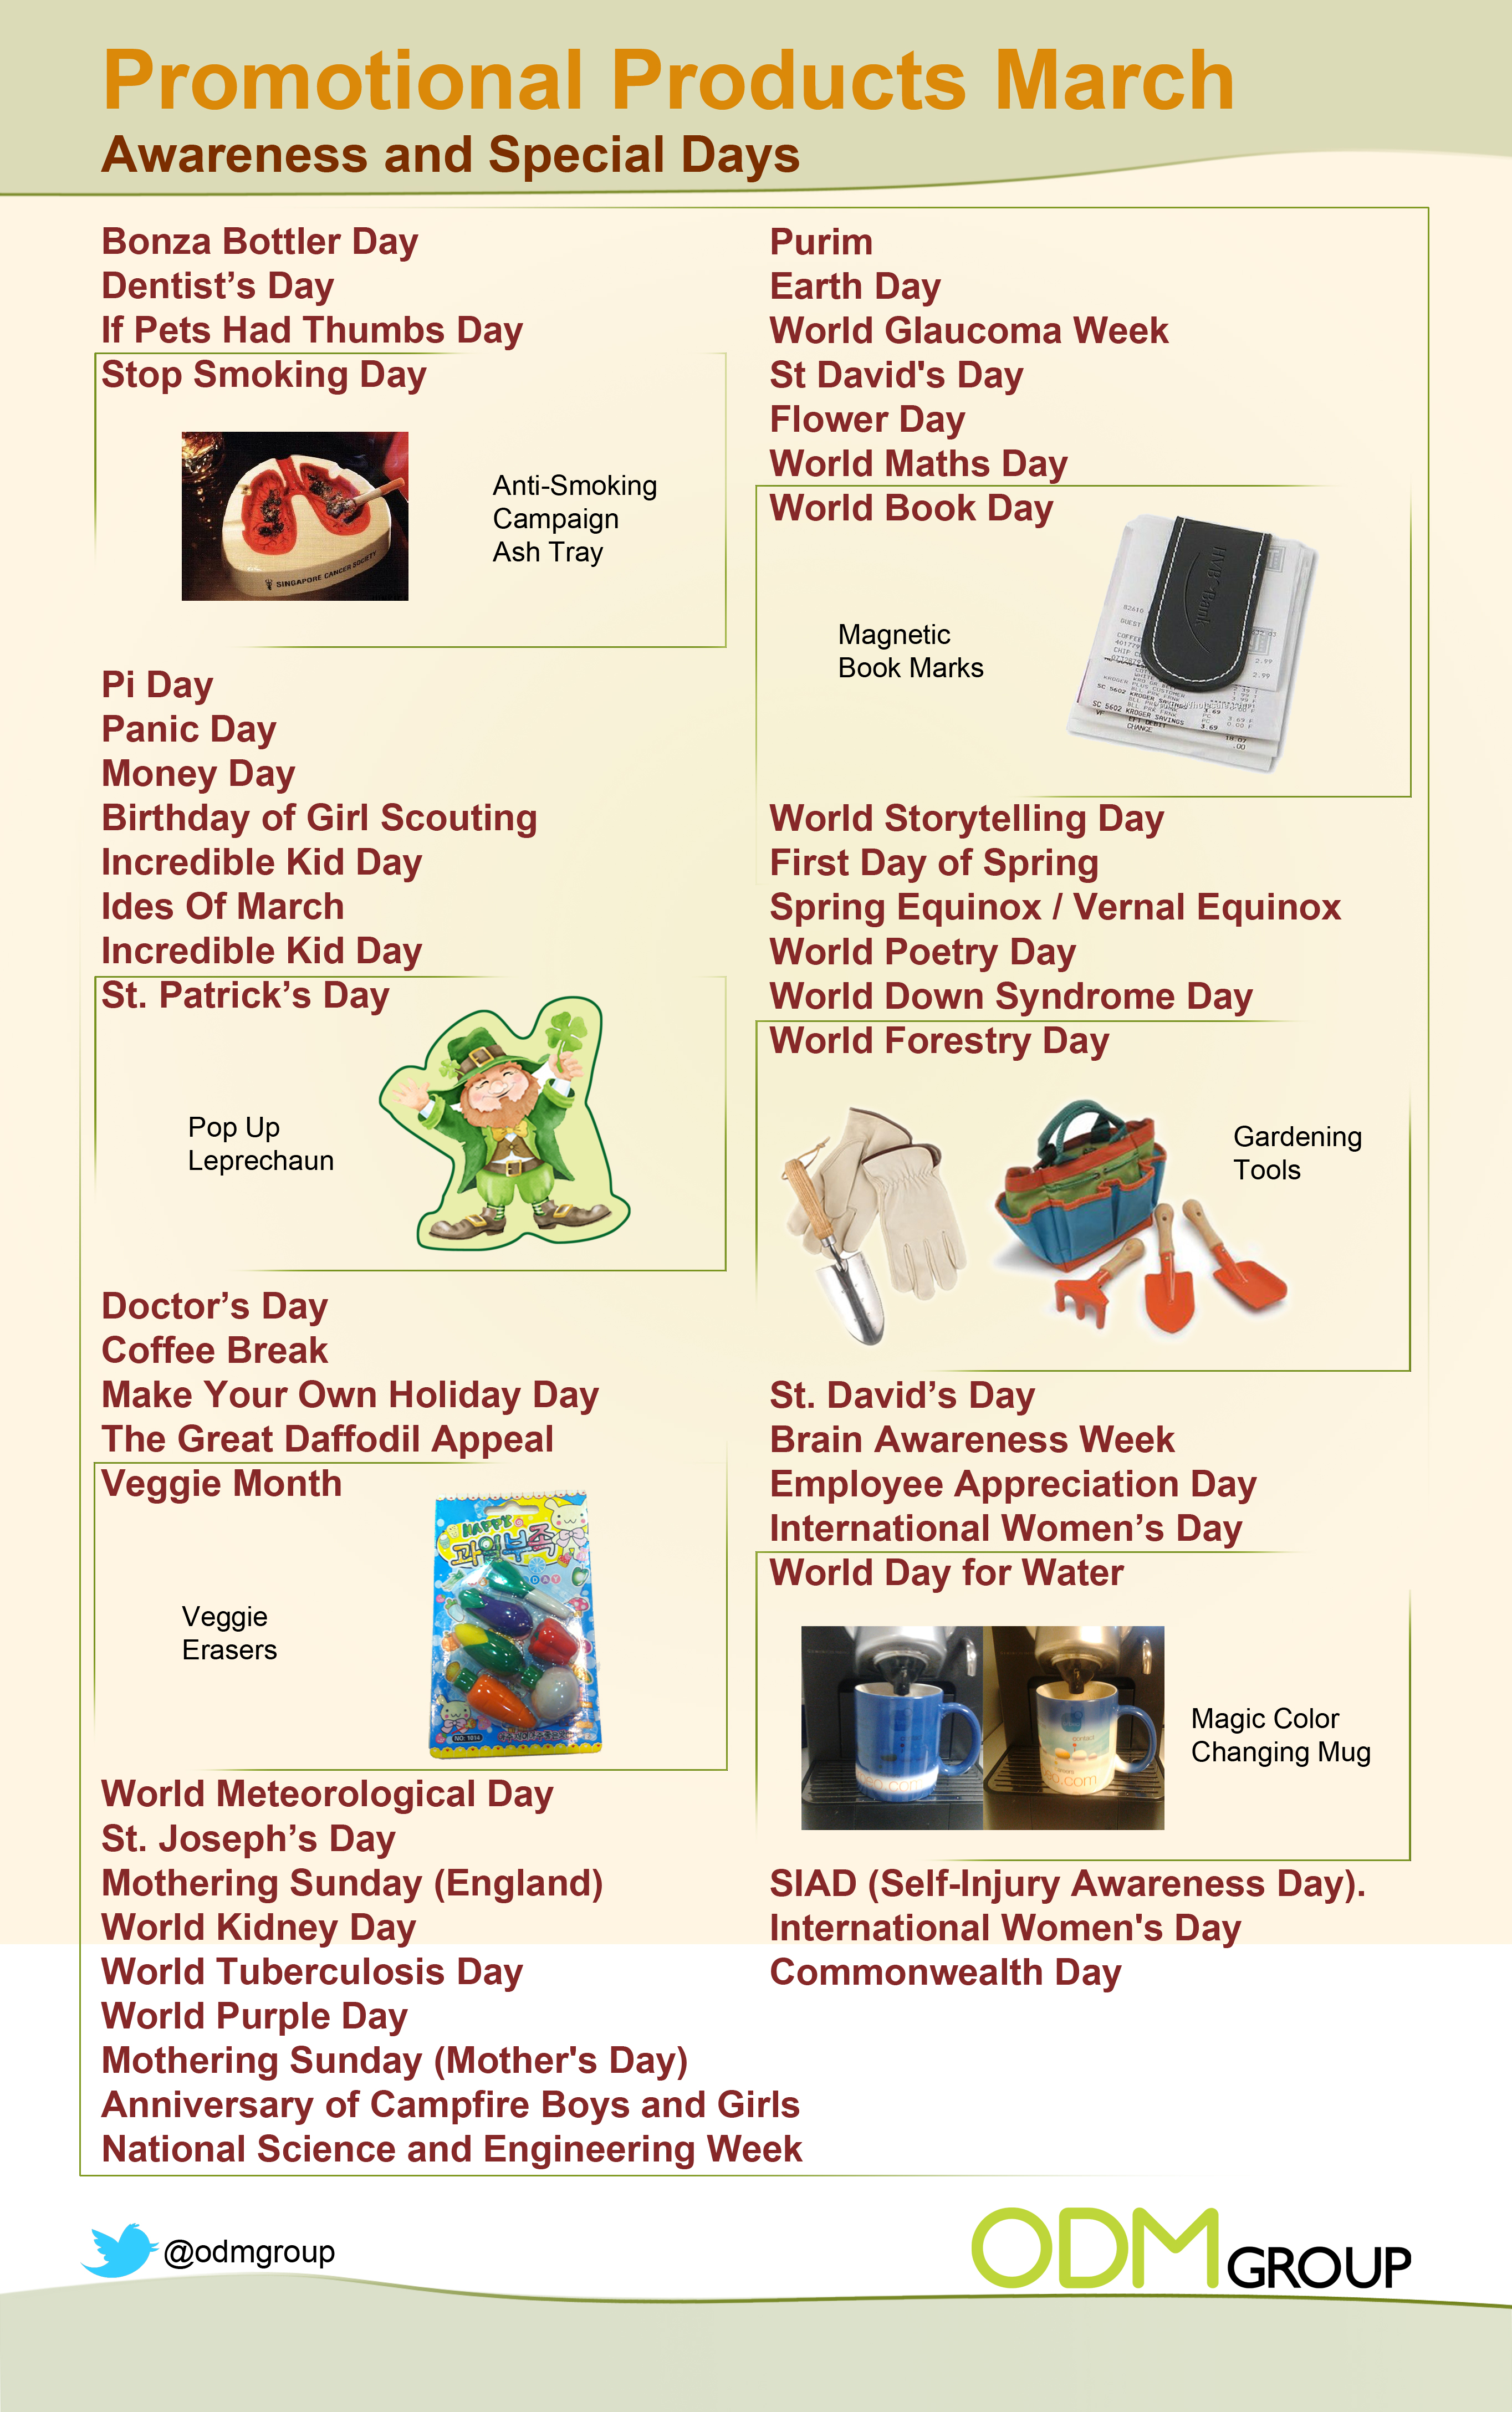 March holiday Awareness and Special Days Promo Gift Ideas for March